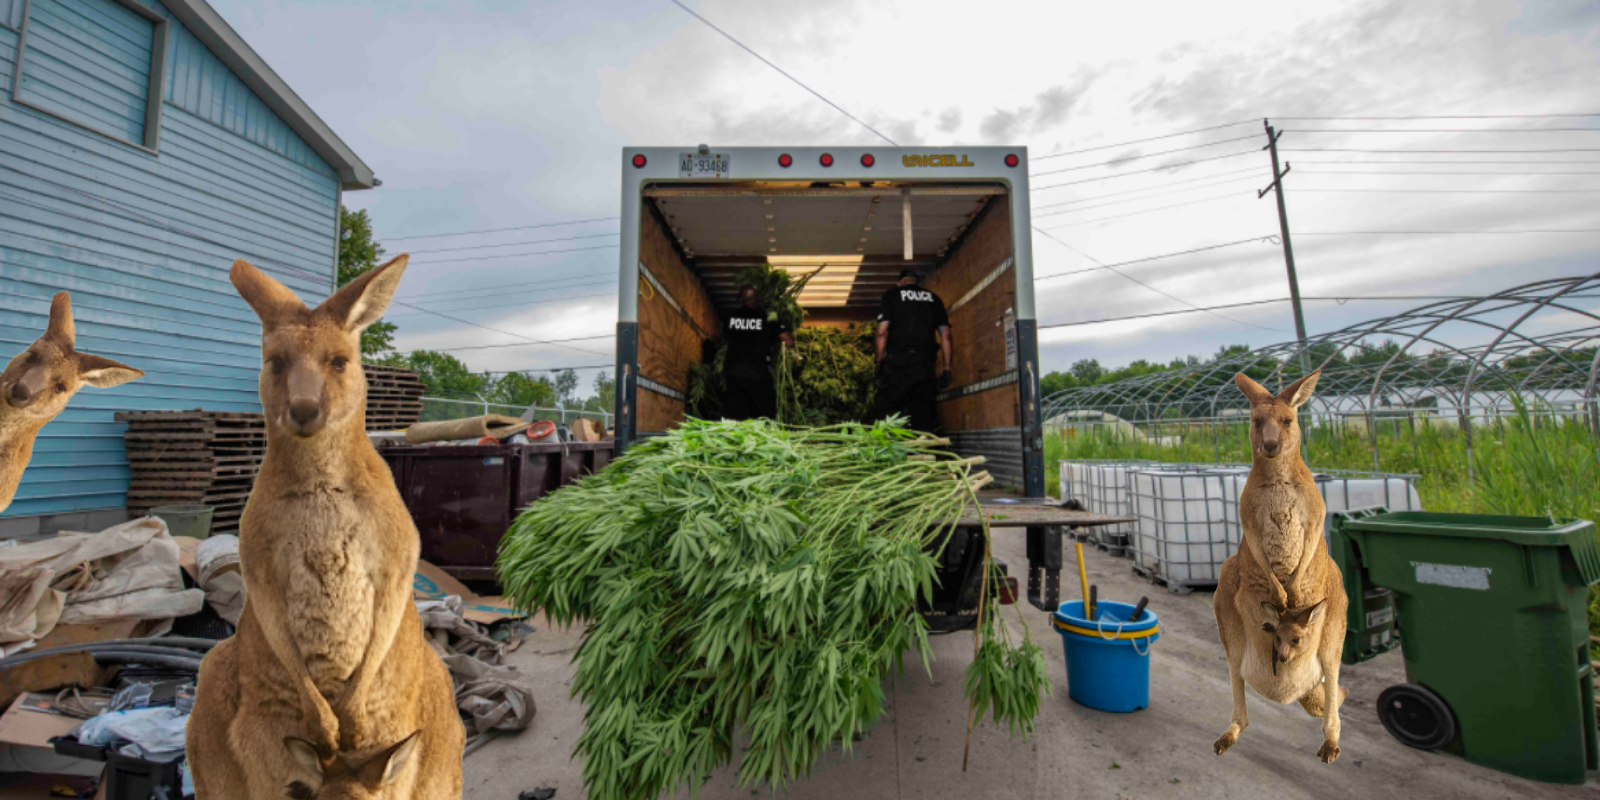 $150 MILLION worth of illegal cannabis, weapons, and 3 kangaroos seized by York Police